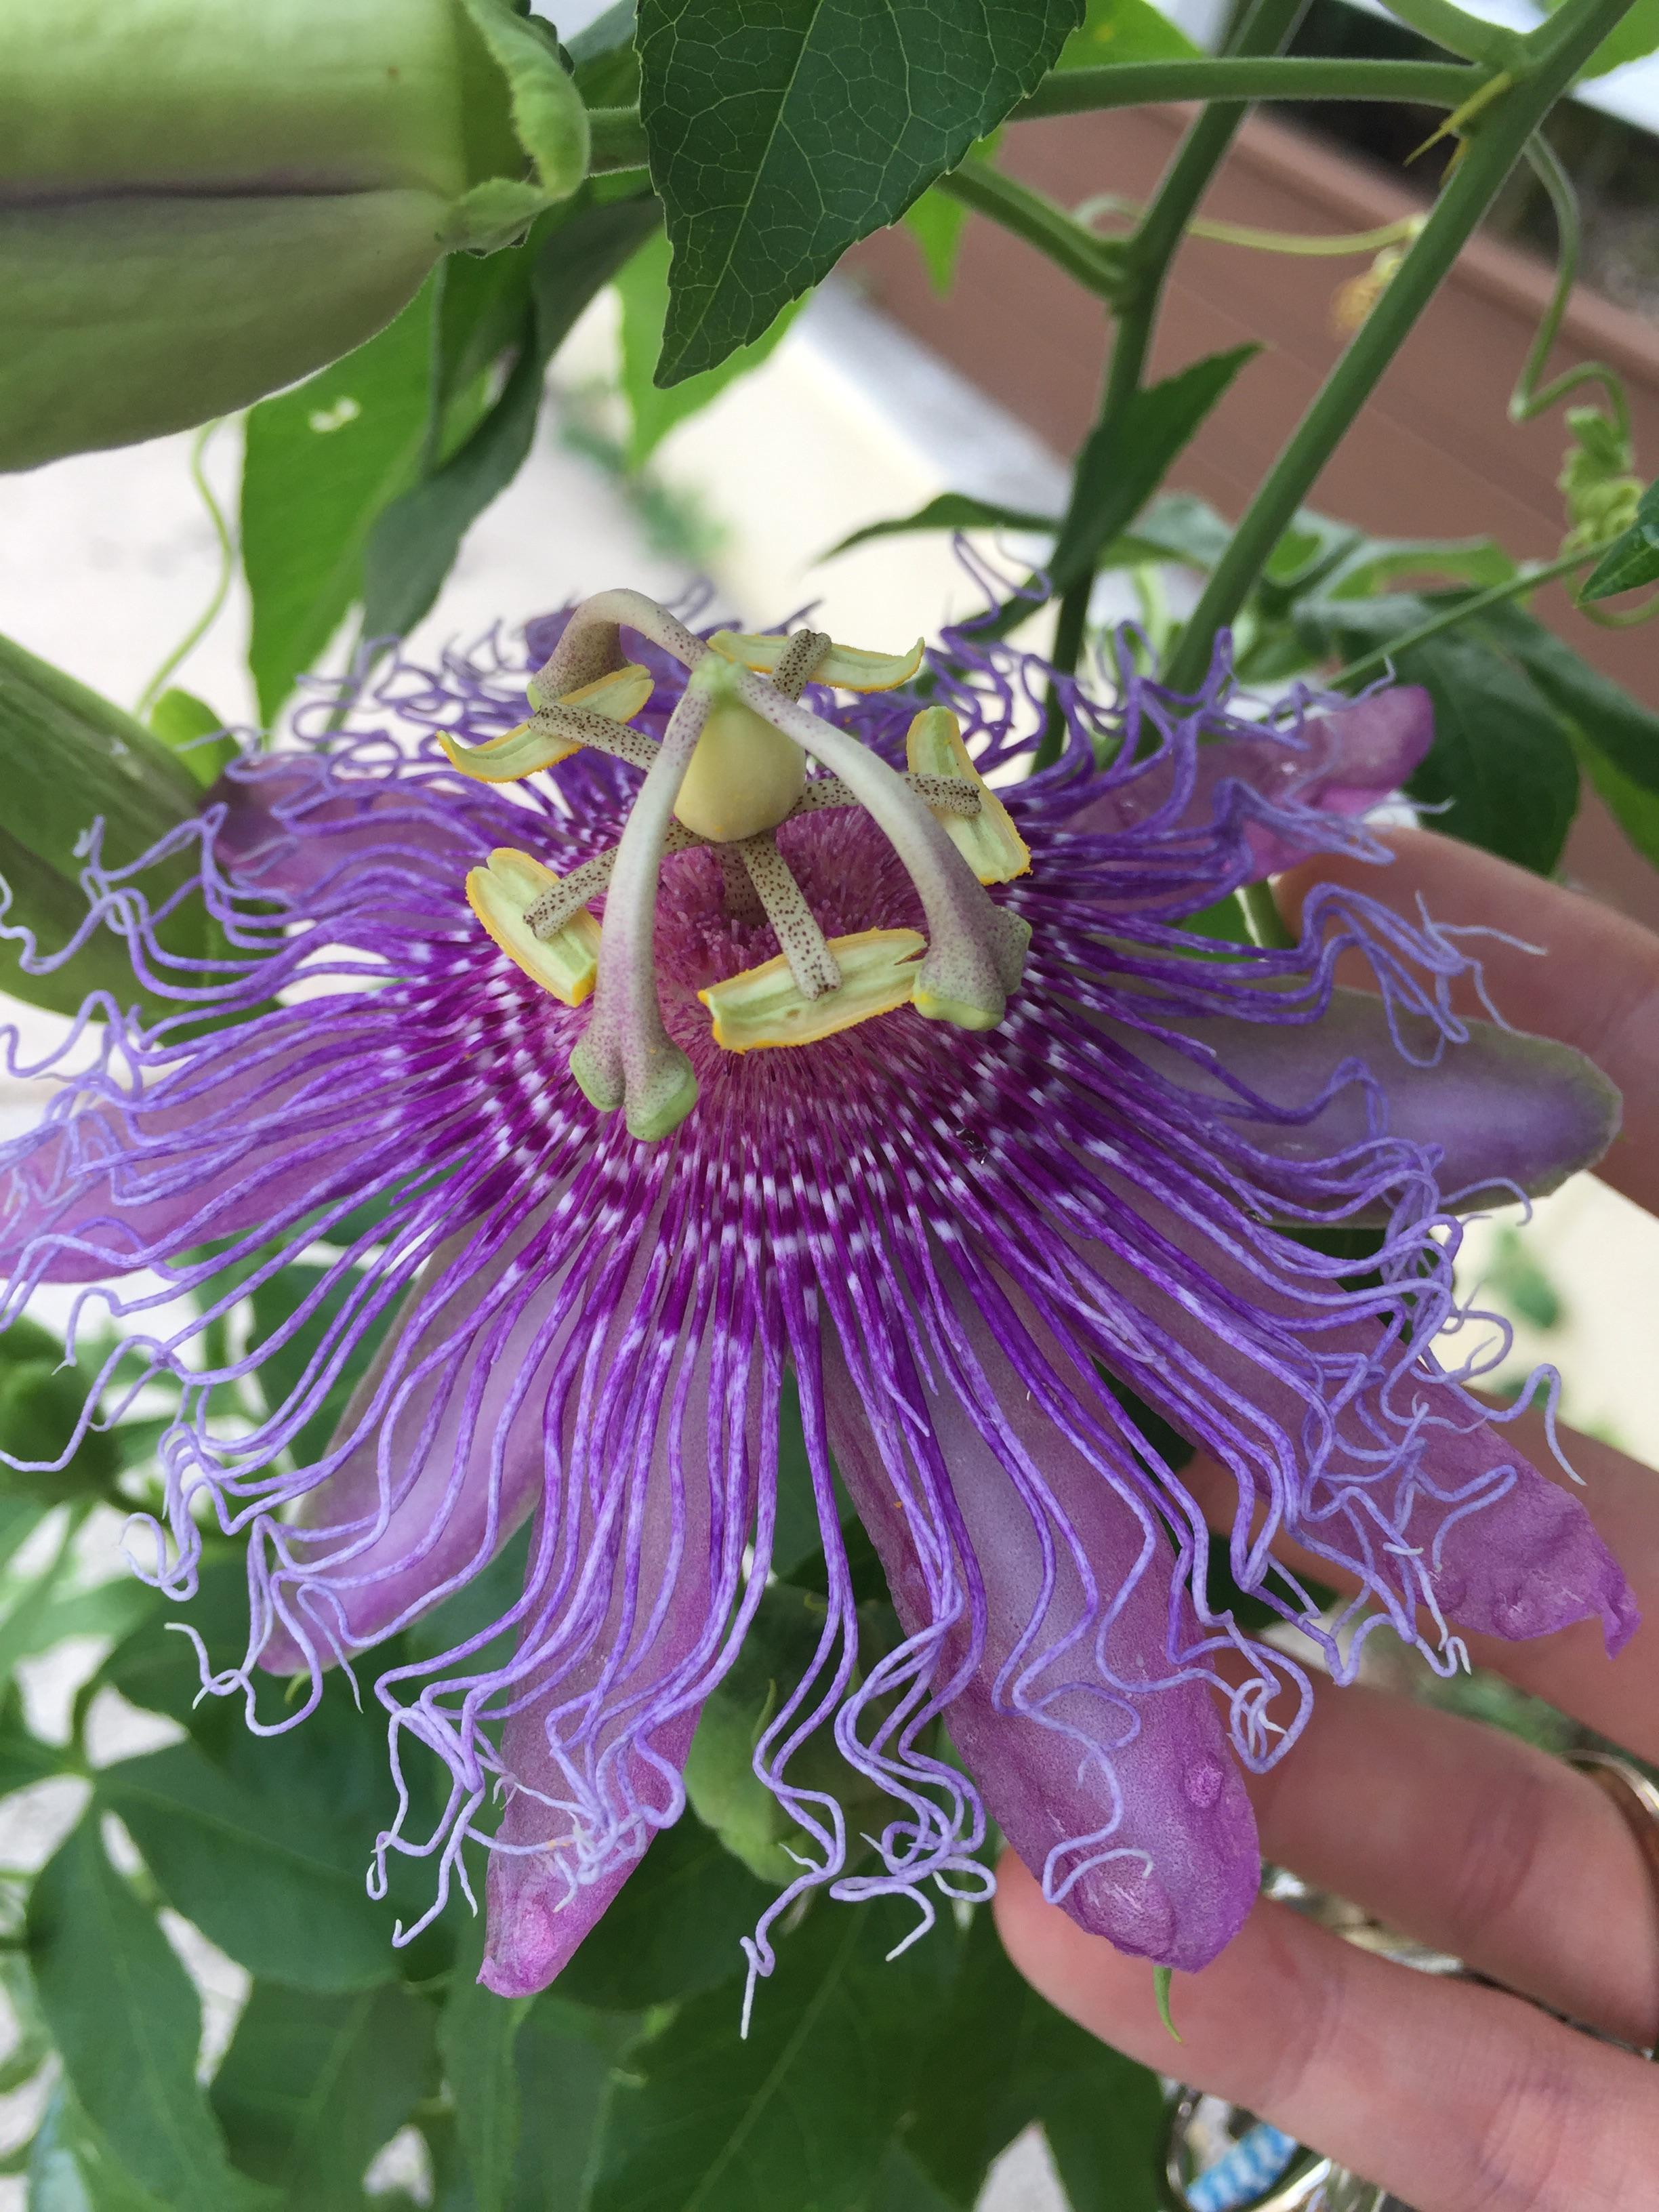 Any idea what kind of alien flower this is? : botany